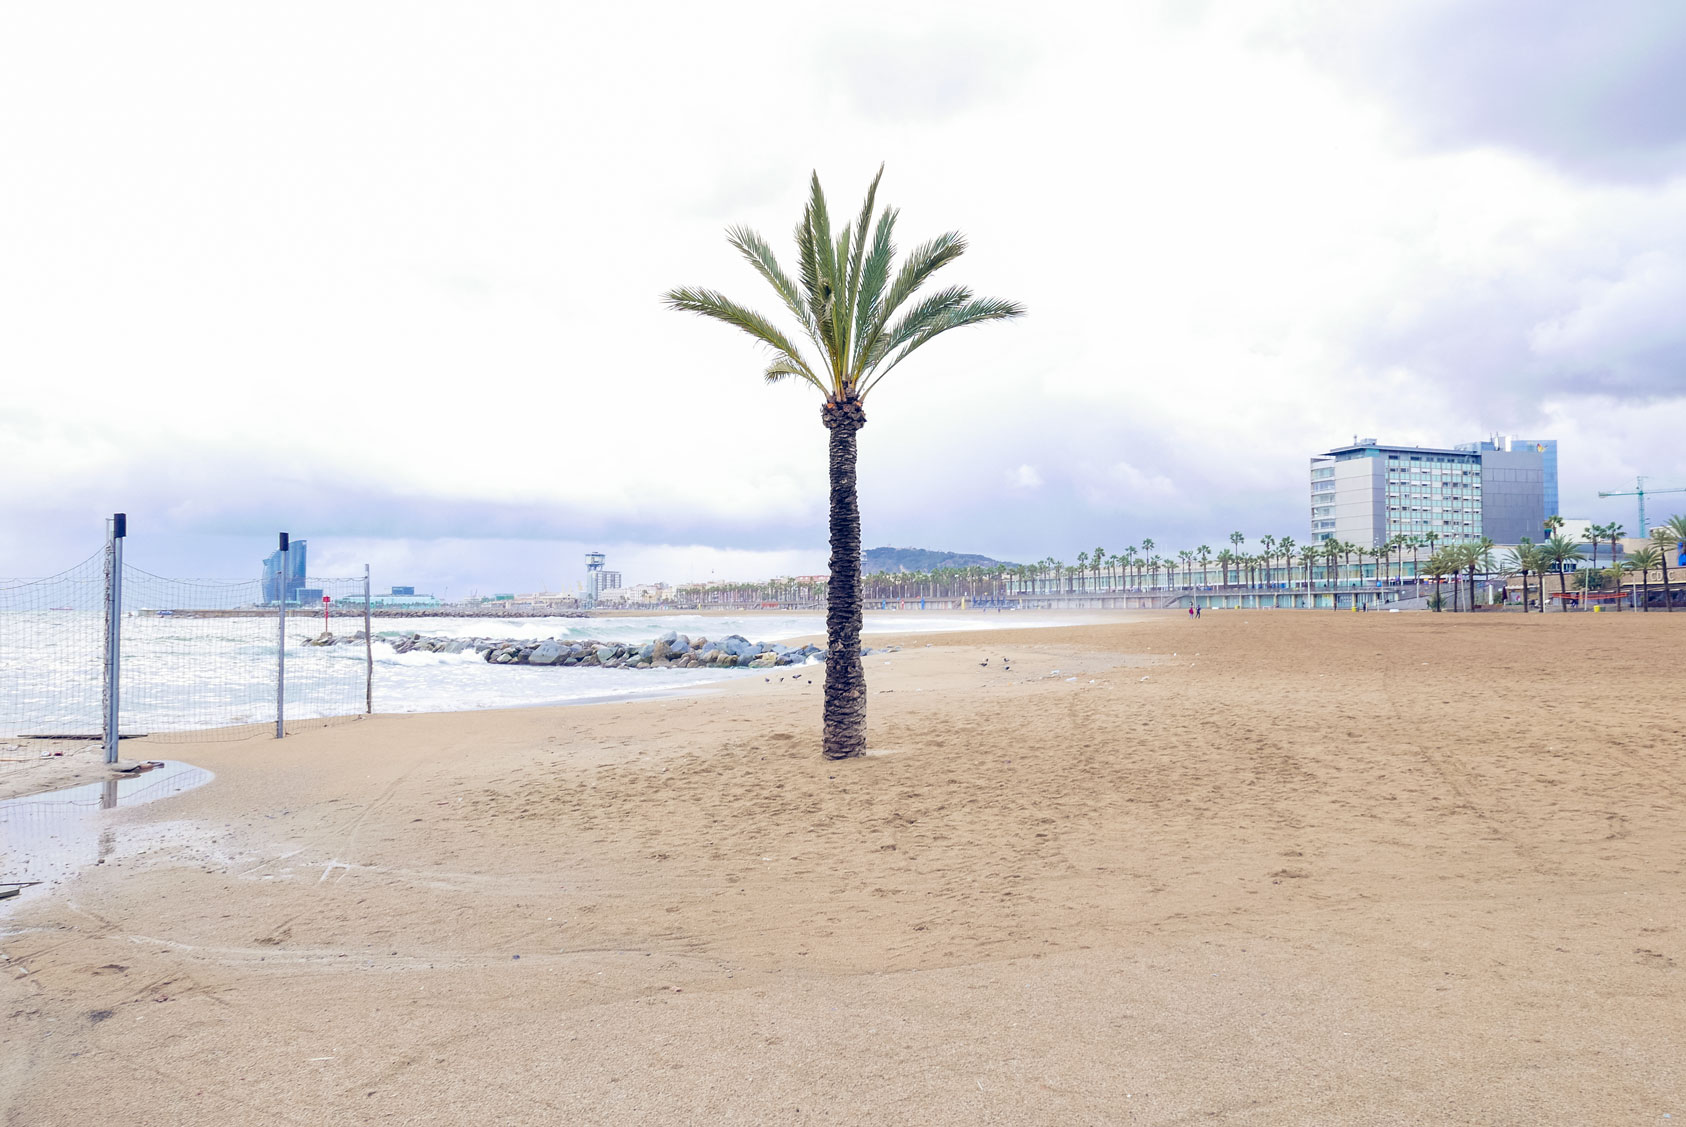 Spain Barcelona beach barceloneta palm